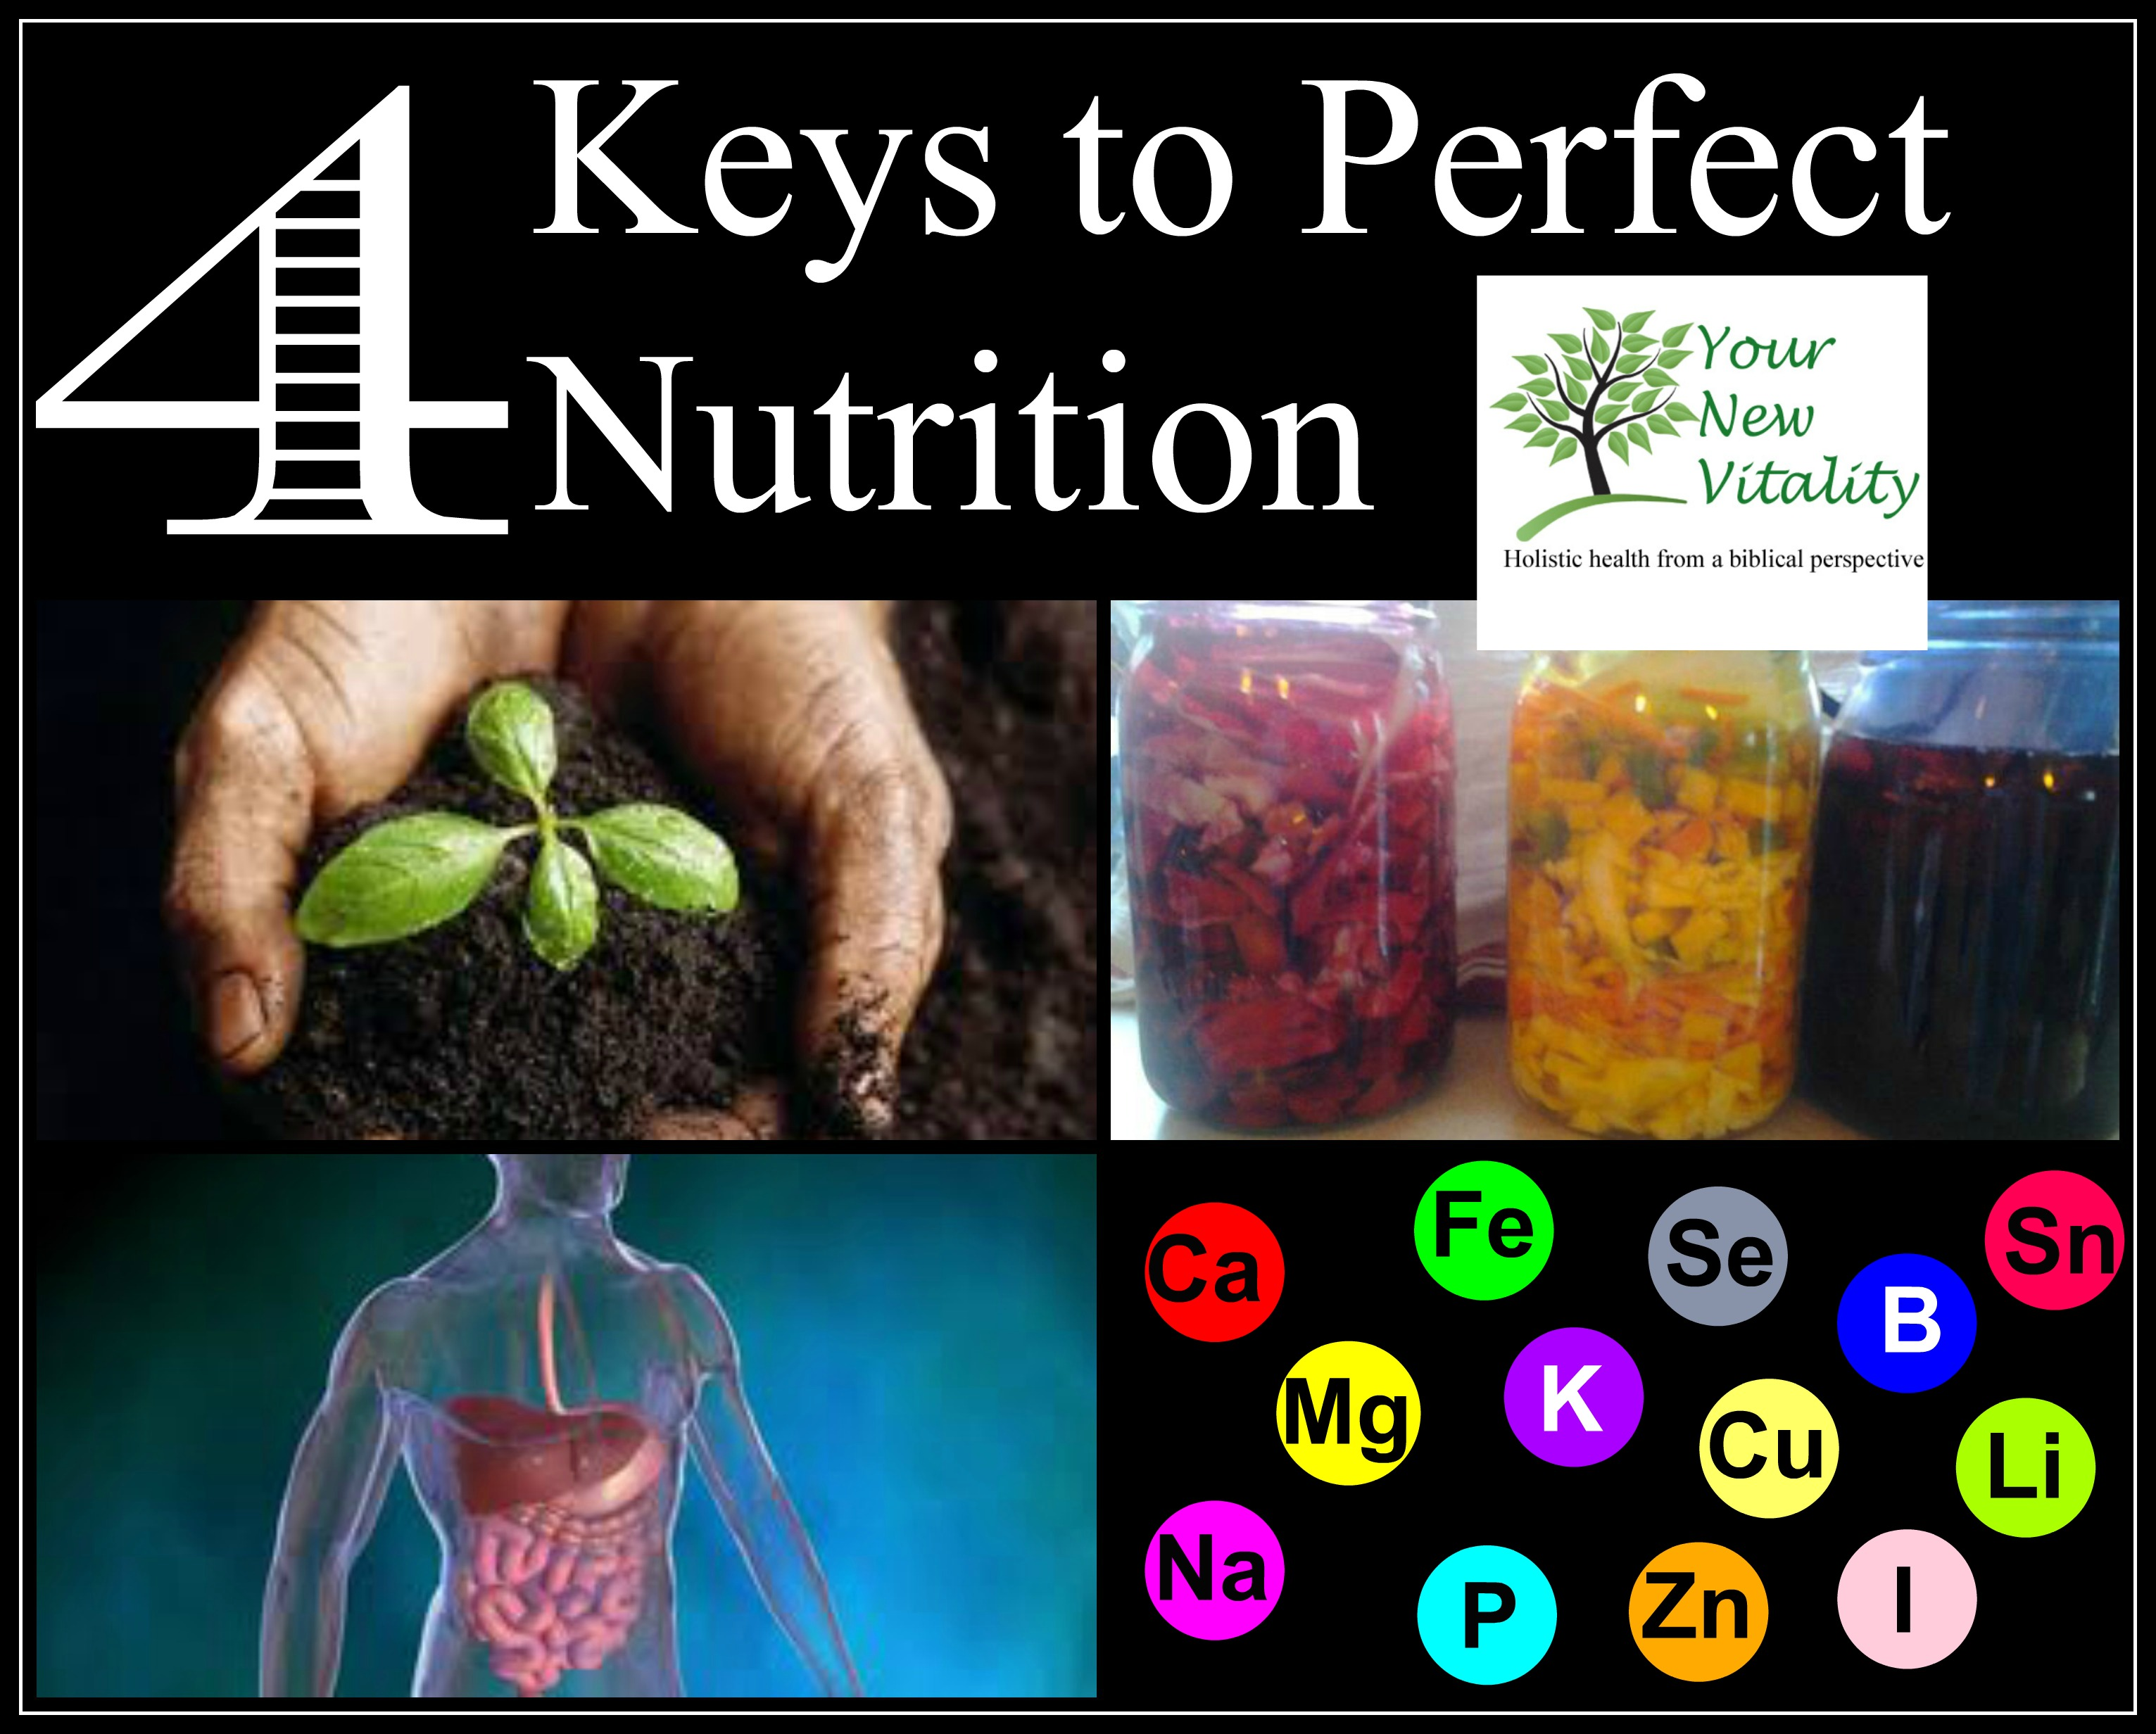 4 Keys to Perfect Nutrition1